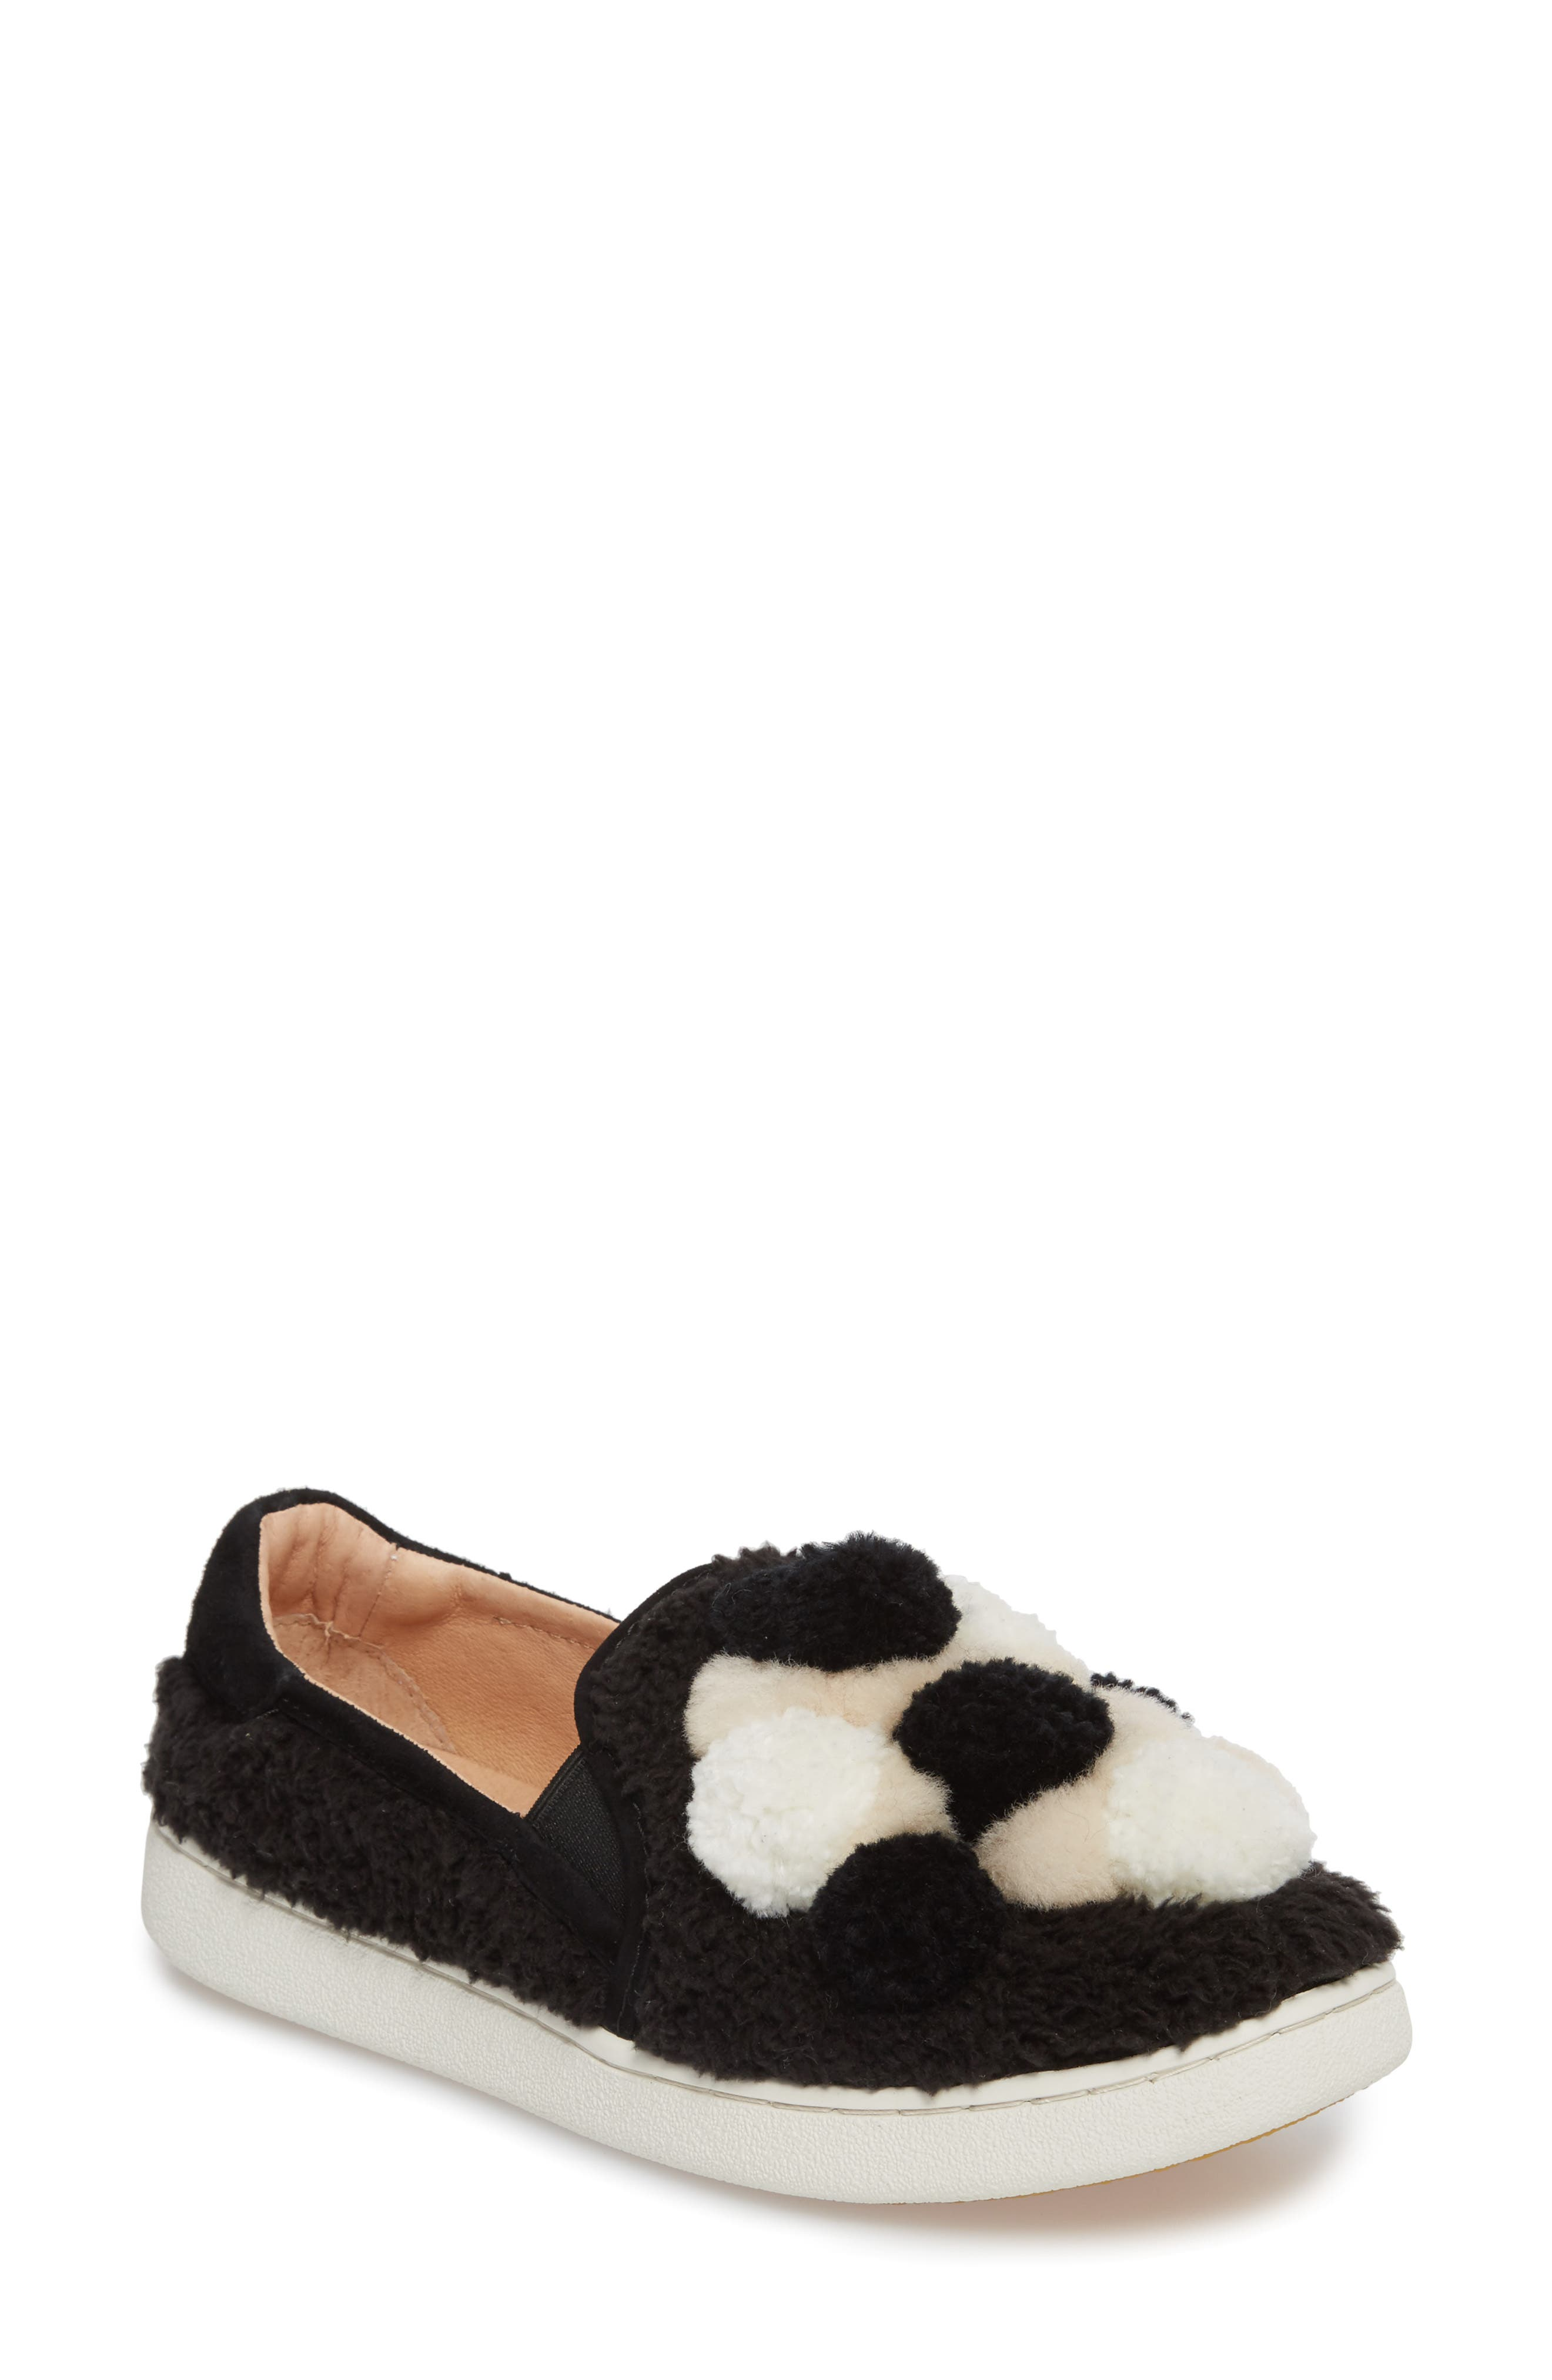 Ricci Plush Genuine Shearling Pompom Slip-On Sneaker,                         Main,                         color, Black